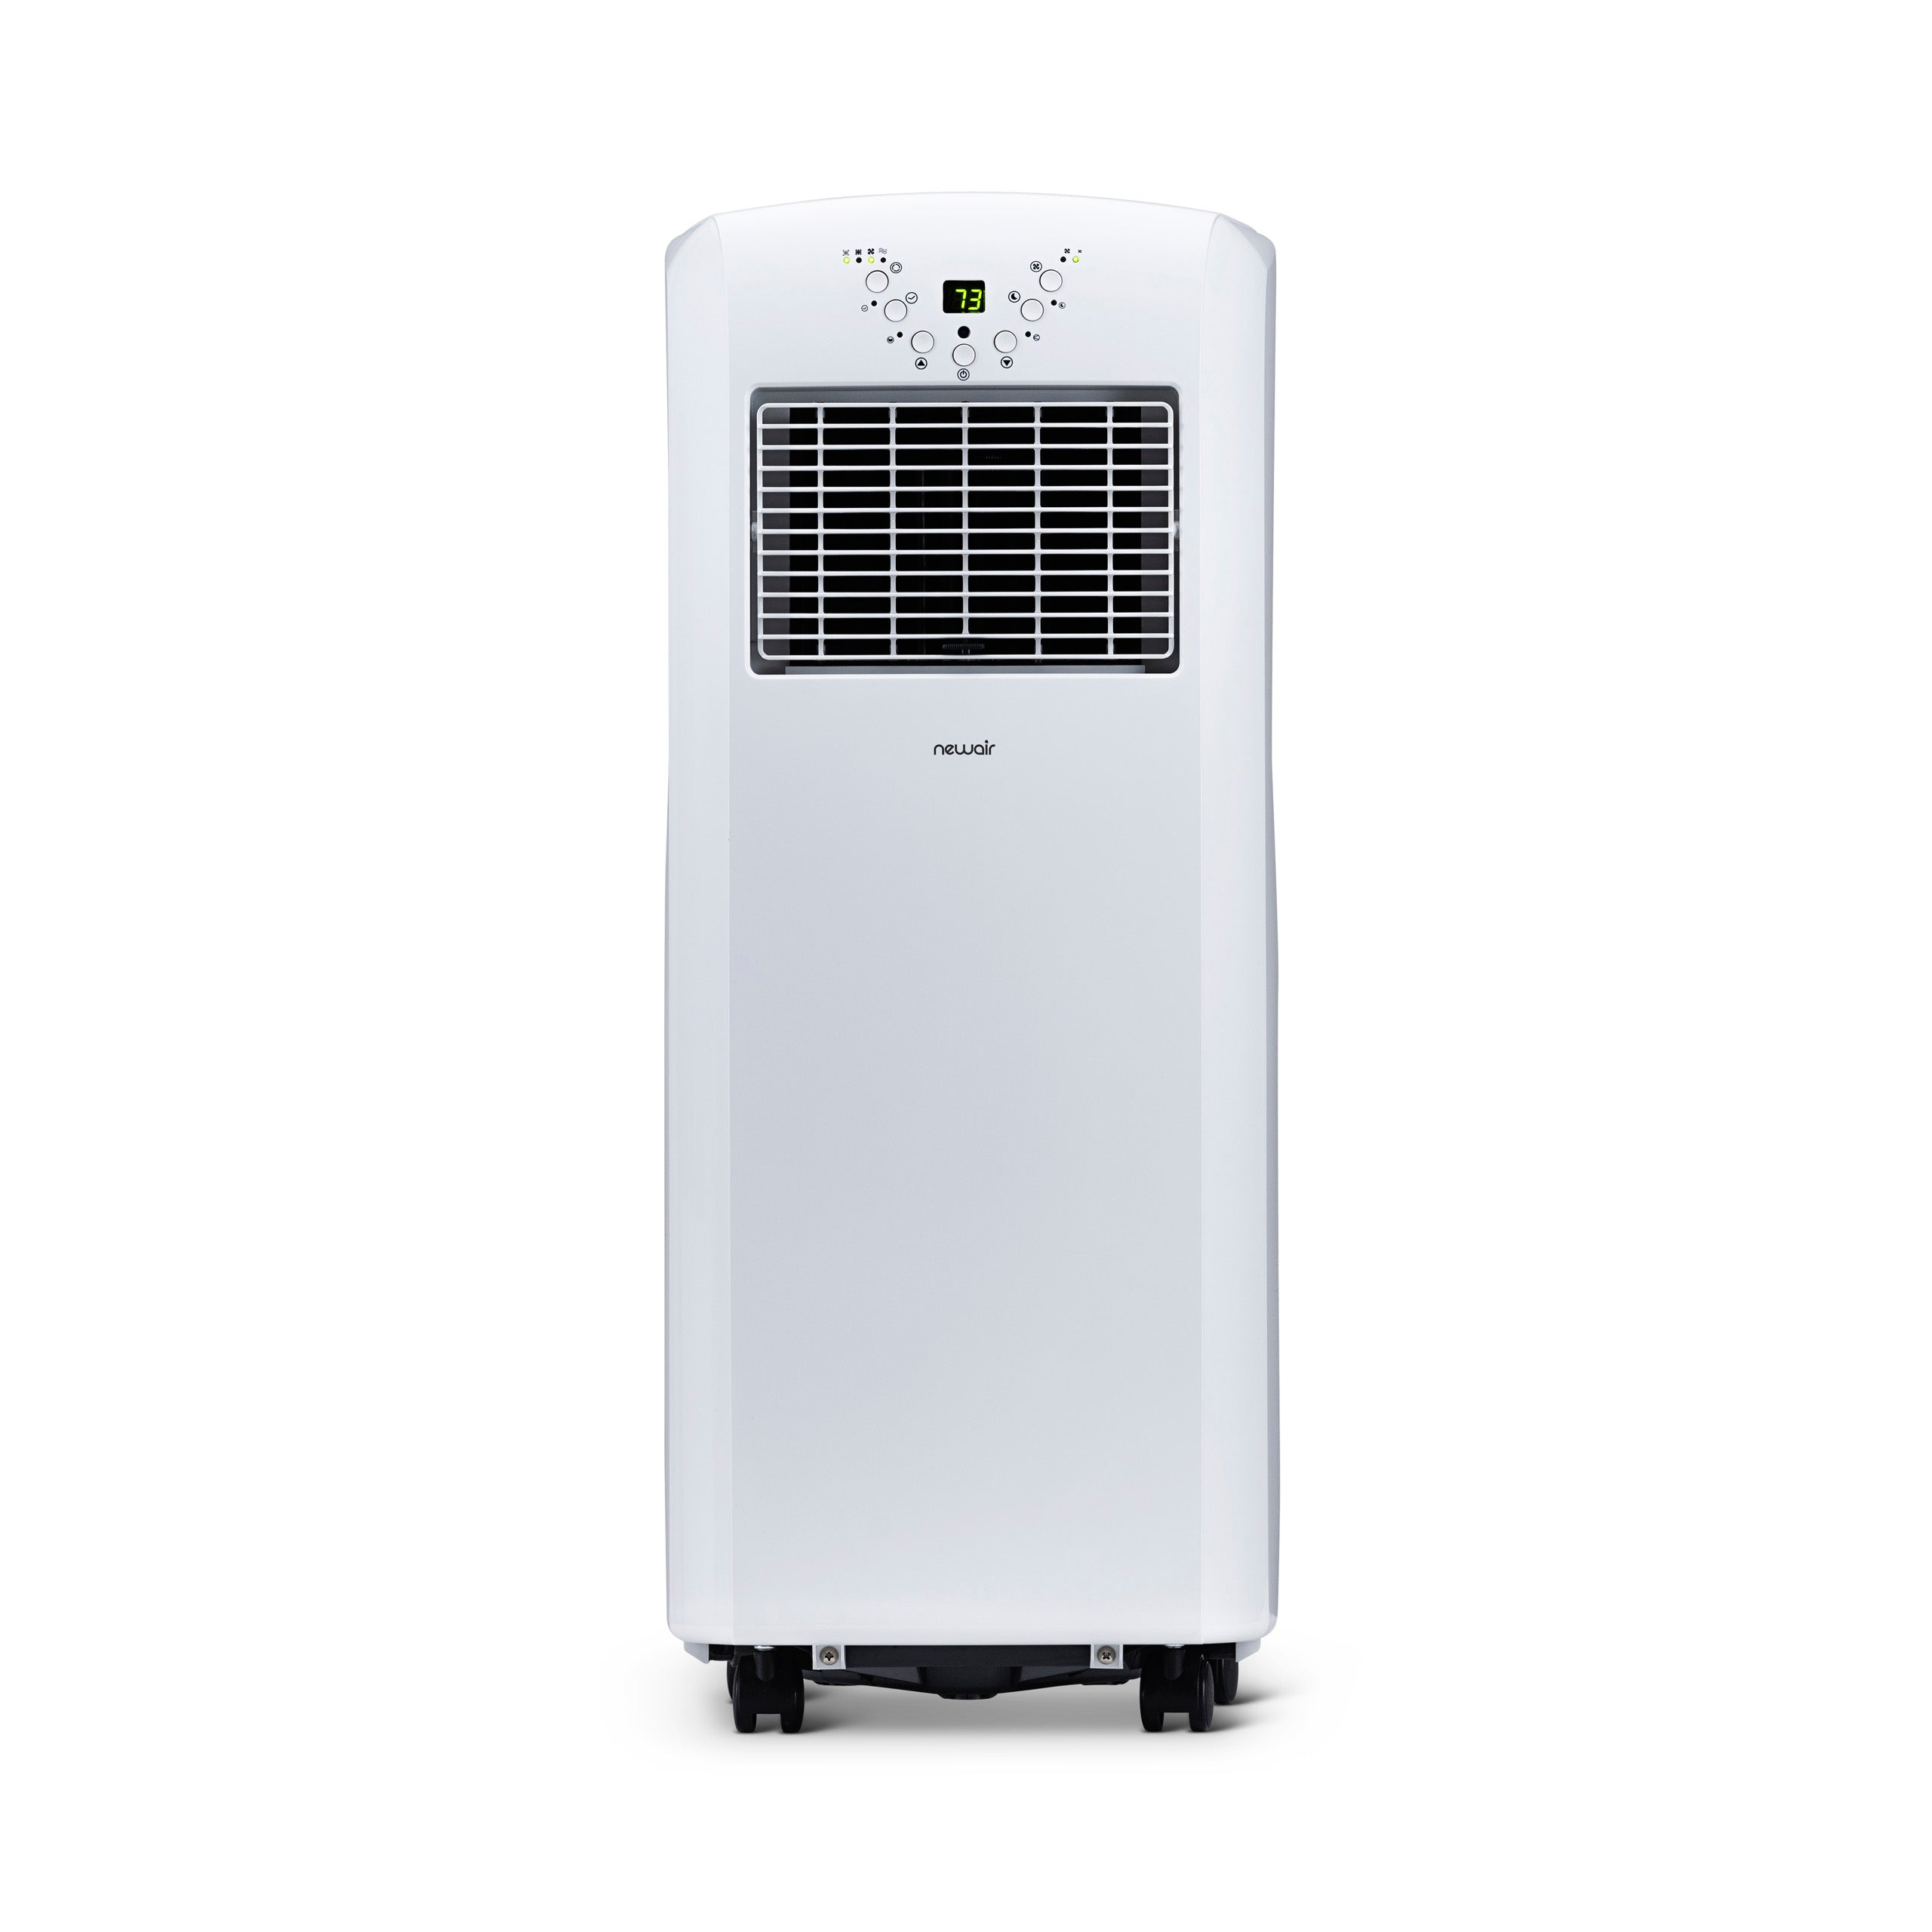 NewAir_Portable_Air_Conditioner_and_Heater_10000_BTUs_6000_BTU_DOE_Cools_325sq_ft